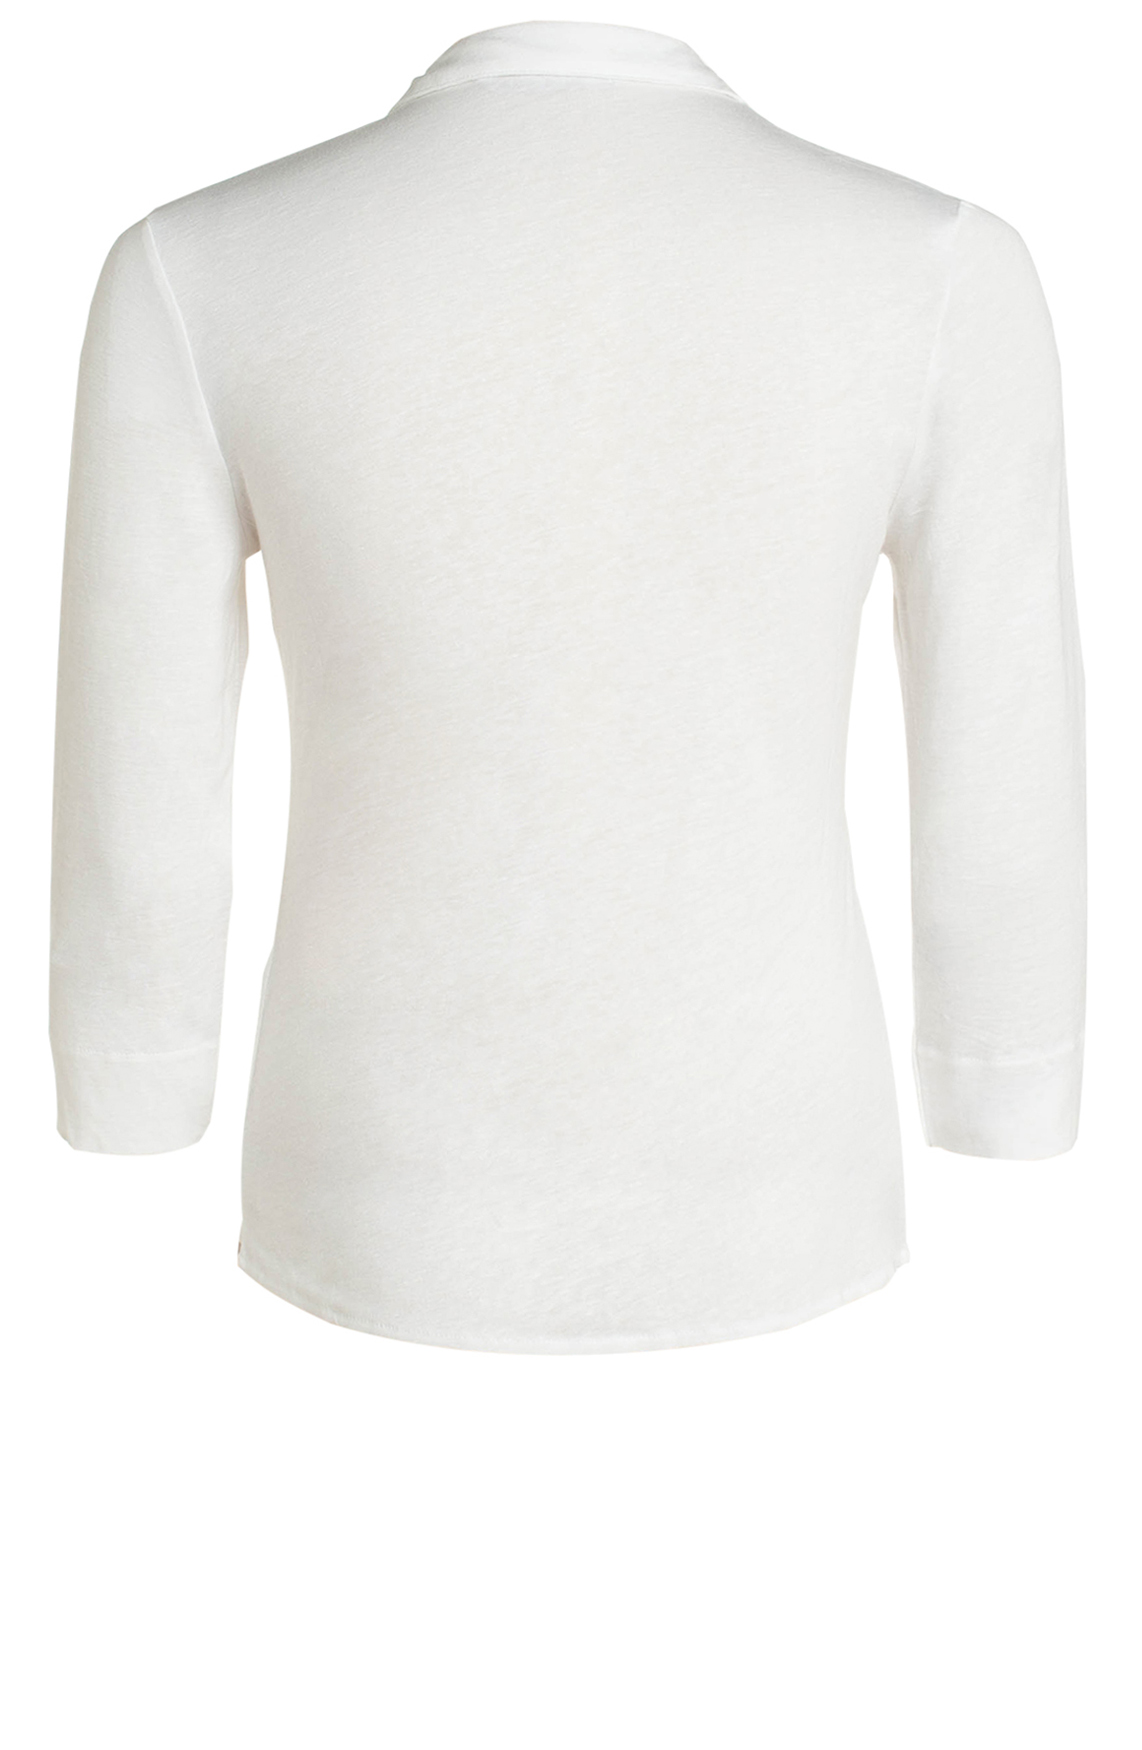 Moscow Dames Blouse wit